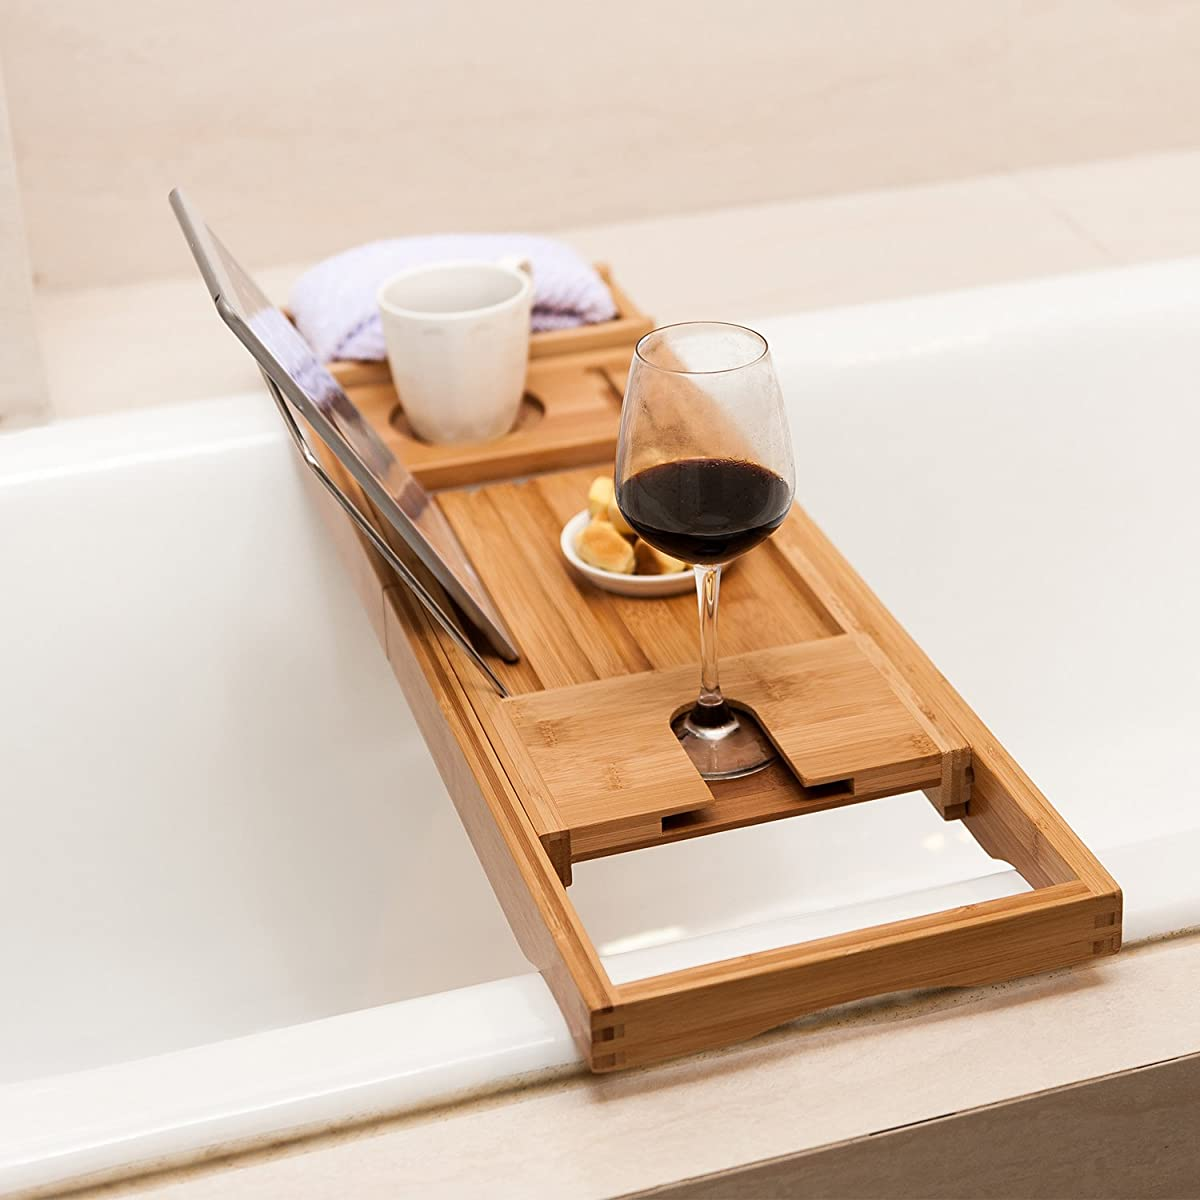 Valdler Home Wooden Bathtub Tray Caddy With Reading Rack And Wine ...